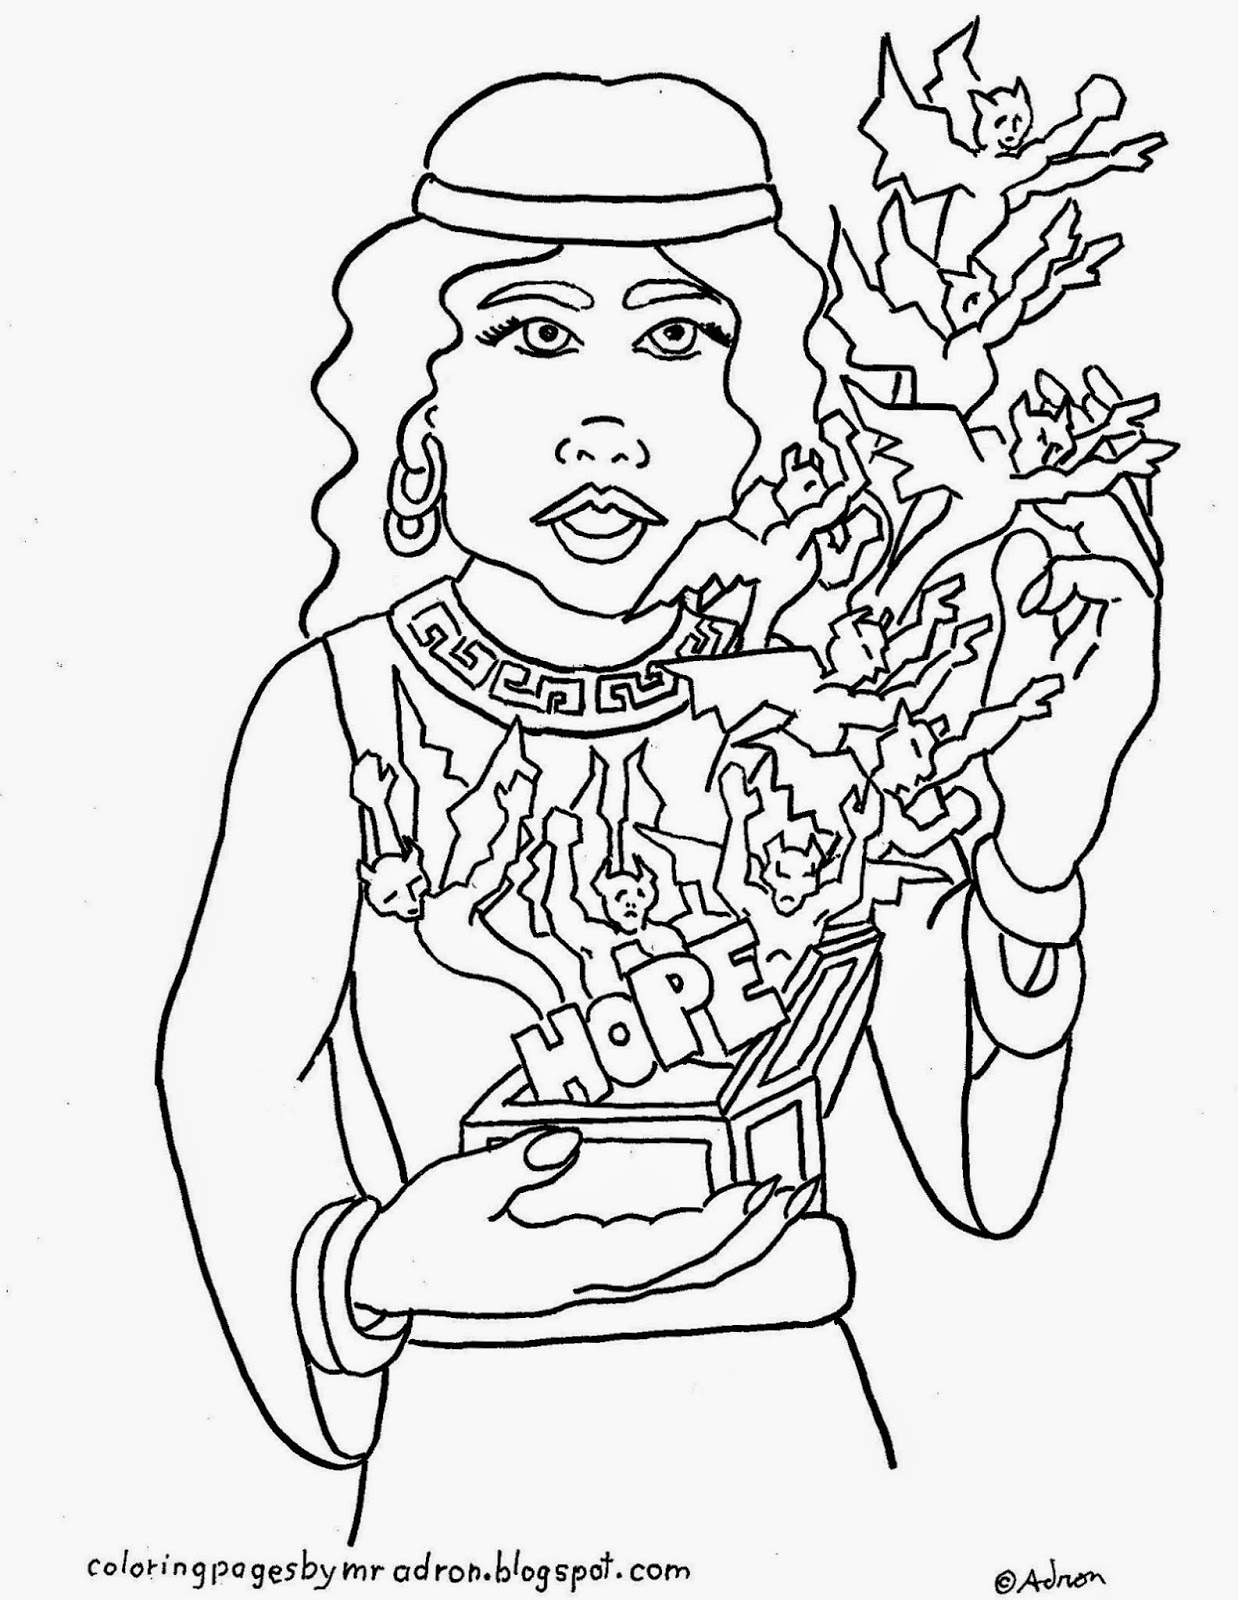 free printable coloring page of Pandora and the box of evil